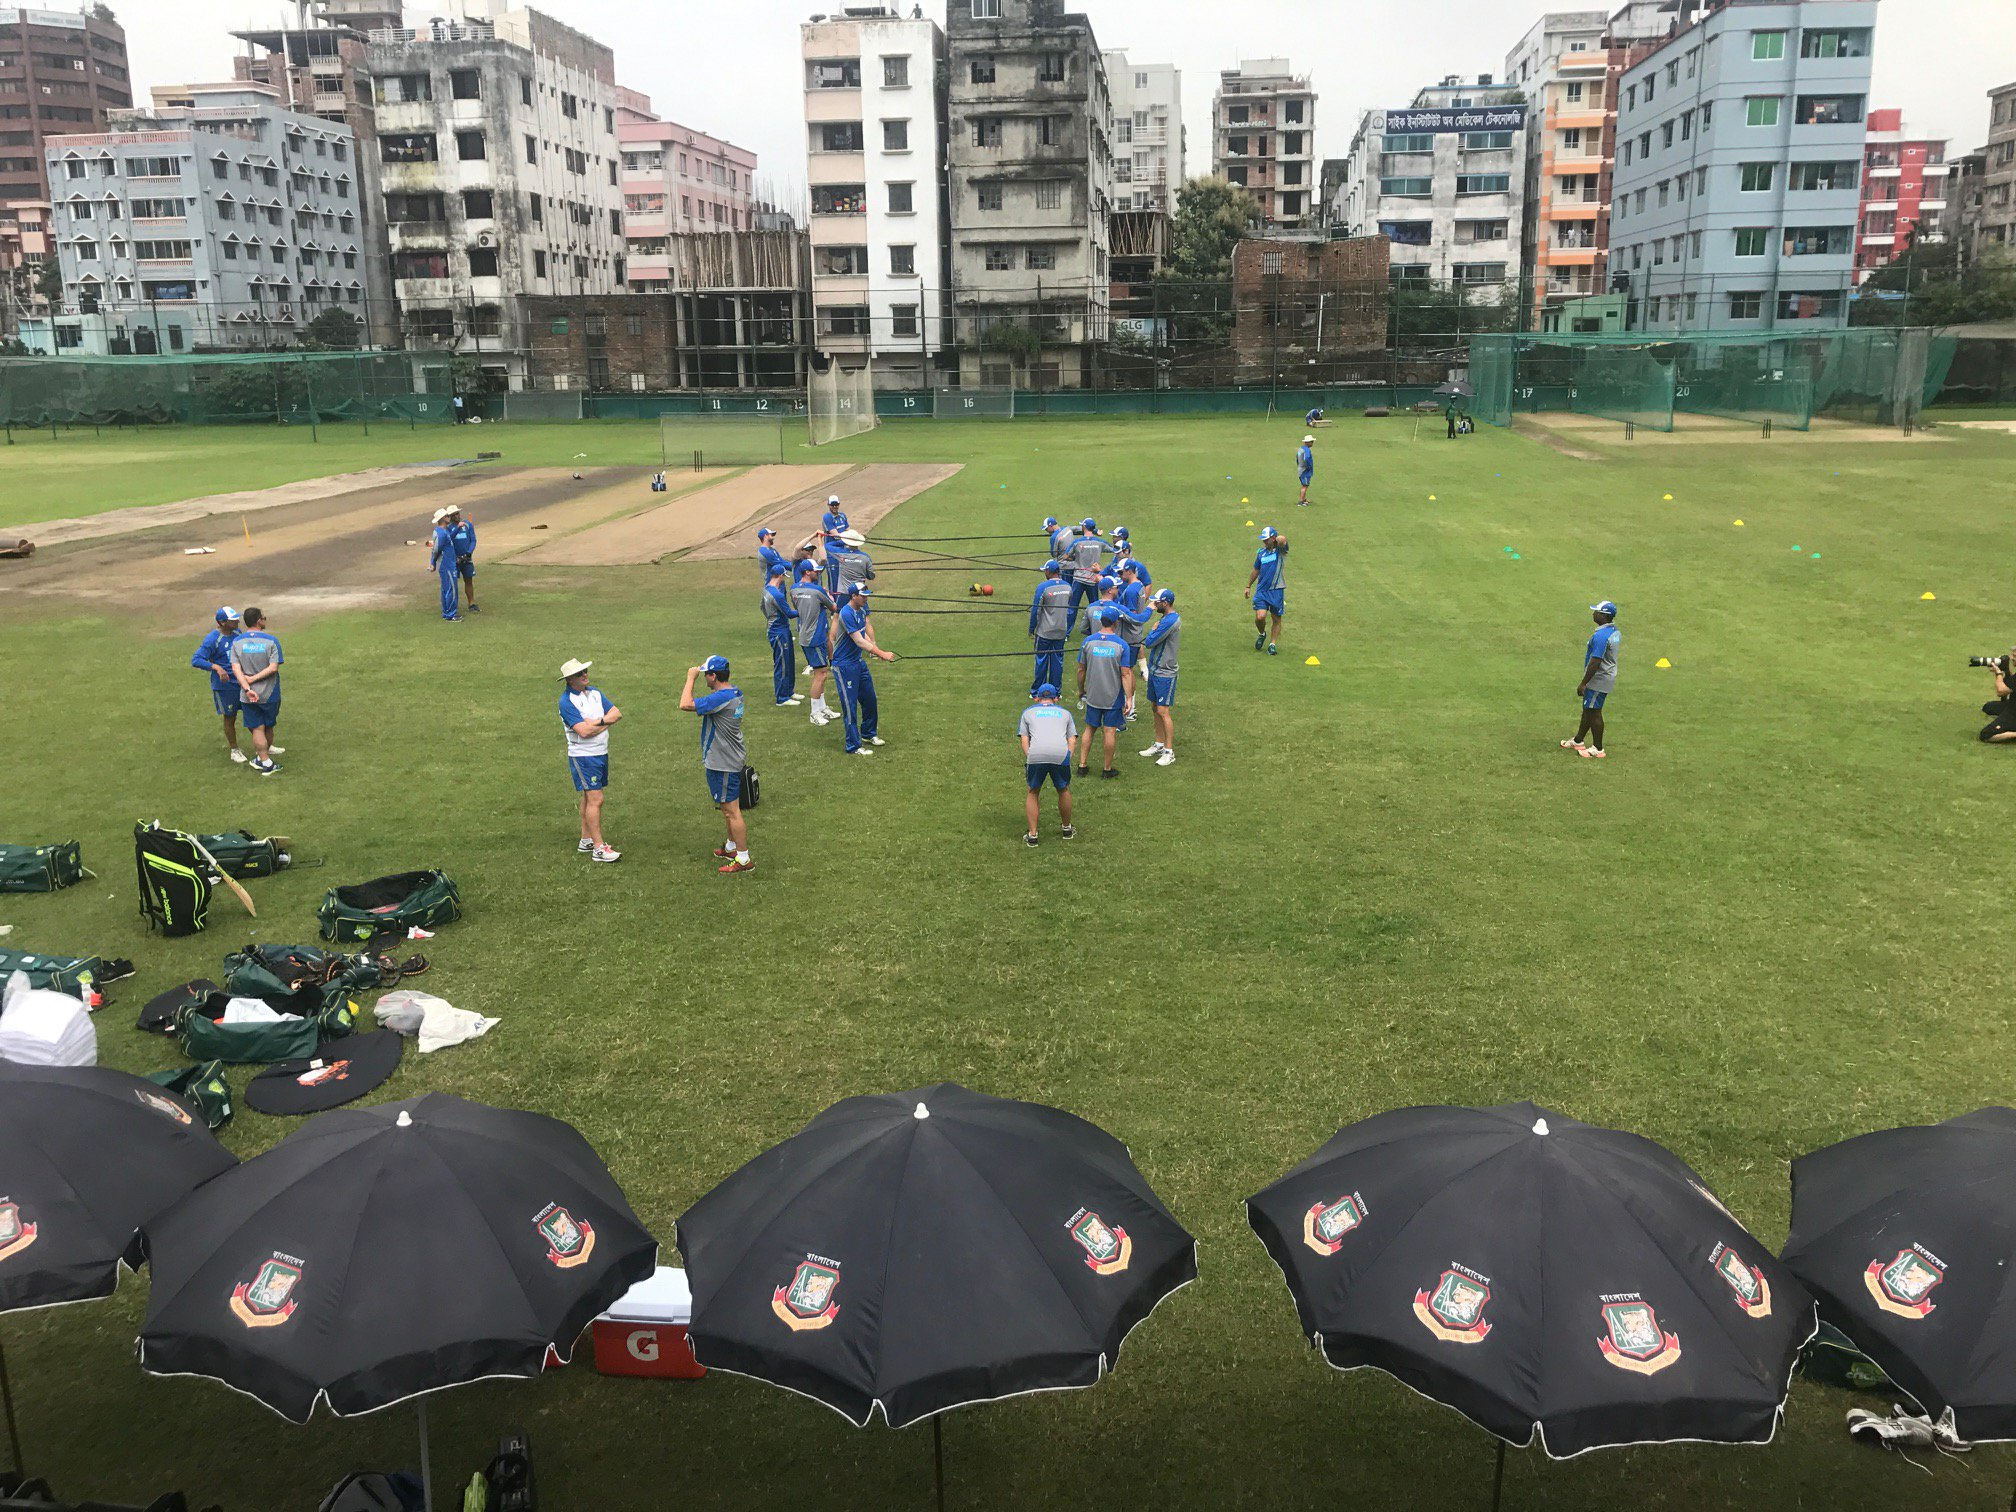 The Aussies are back at it ahead of Sunday's first Test against @BCBtigers #BANvAUS https://t.co/ptn7tAIV9K